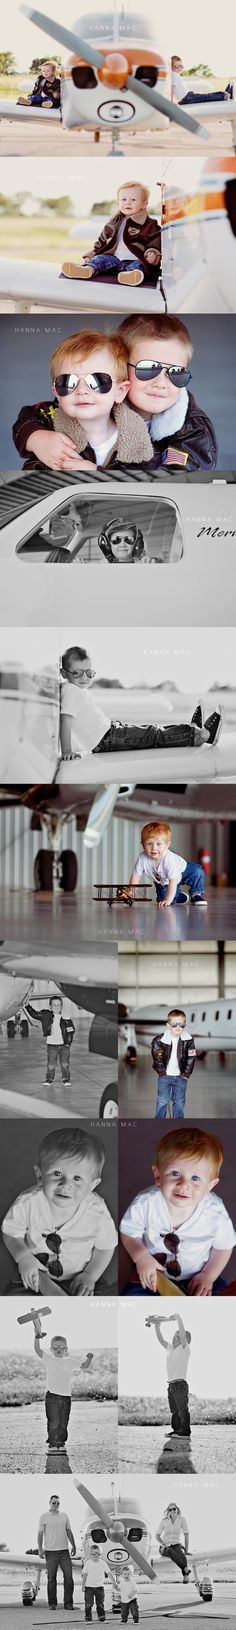 Photo Session Ideas / Child Photography / Airplane / Pilot / Prop Ideas / Pose / Poses